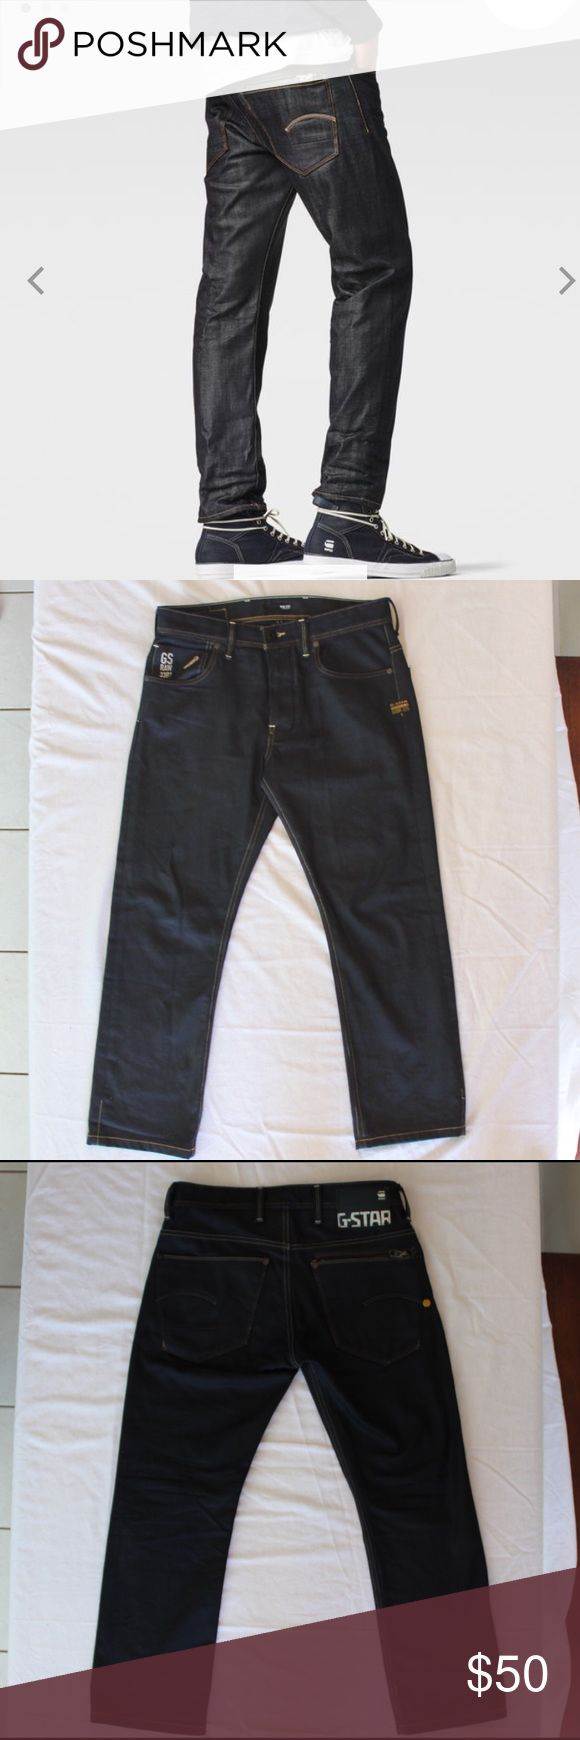 """G-Star Raw Jeans 31/27 G-Star Raw 3301 jeans. Excellent condition. Professionally hemmed to 27"""". 10"""" front rise. 100% cotton. ATTACC Straight. Concealed zip pocket and flat rivets. No heel fray however even tho they were professionally hemmed a bit of very very minor fray shows through on vertical hem since they are raw denim it is noticeable only because of the teeny tiny spec of color peeping out. It is not something anyone is going to notice except you and that's because I told you. Love…"""